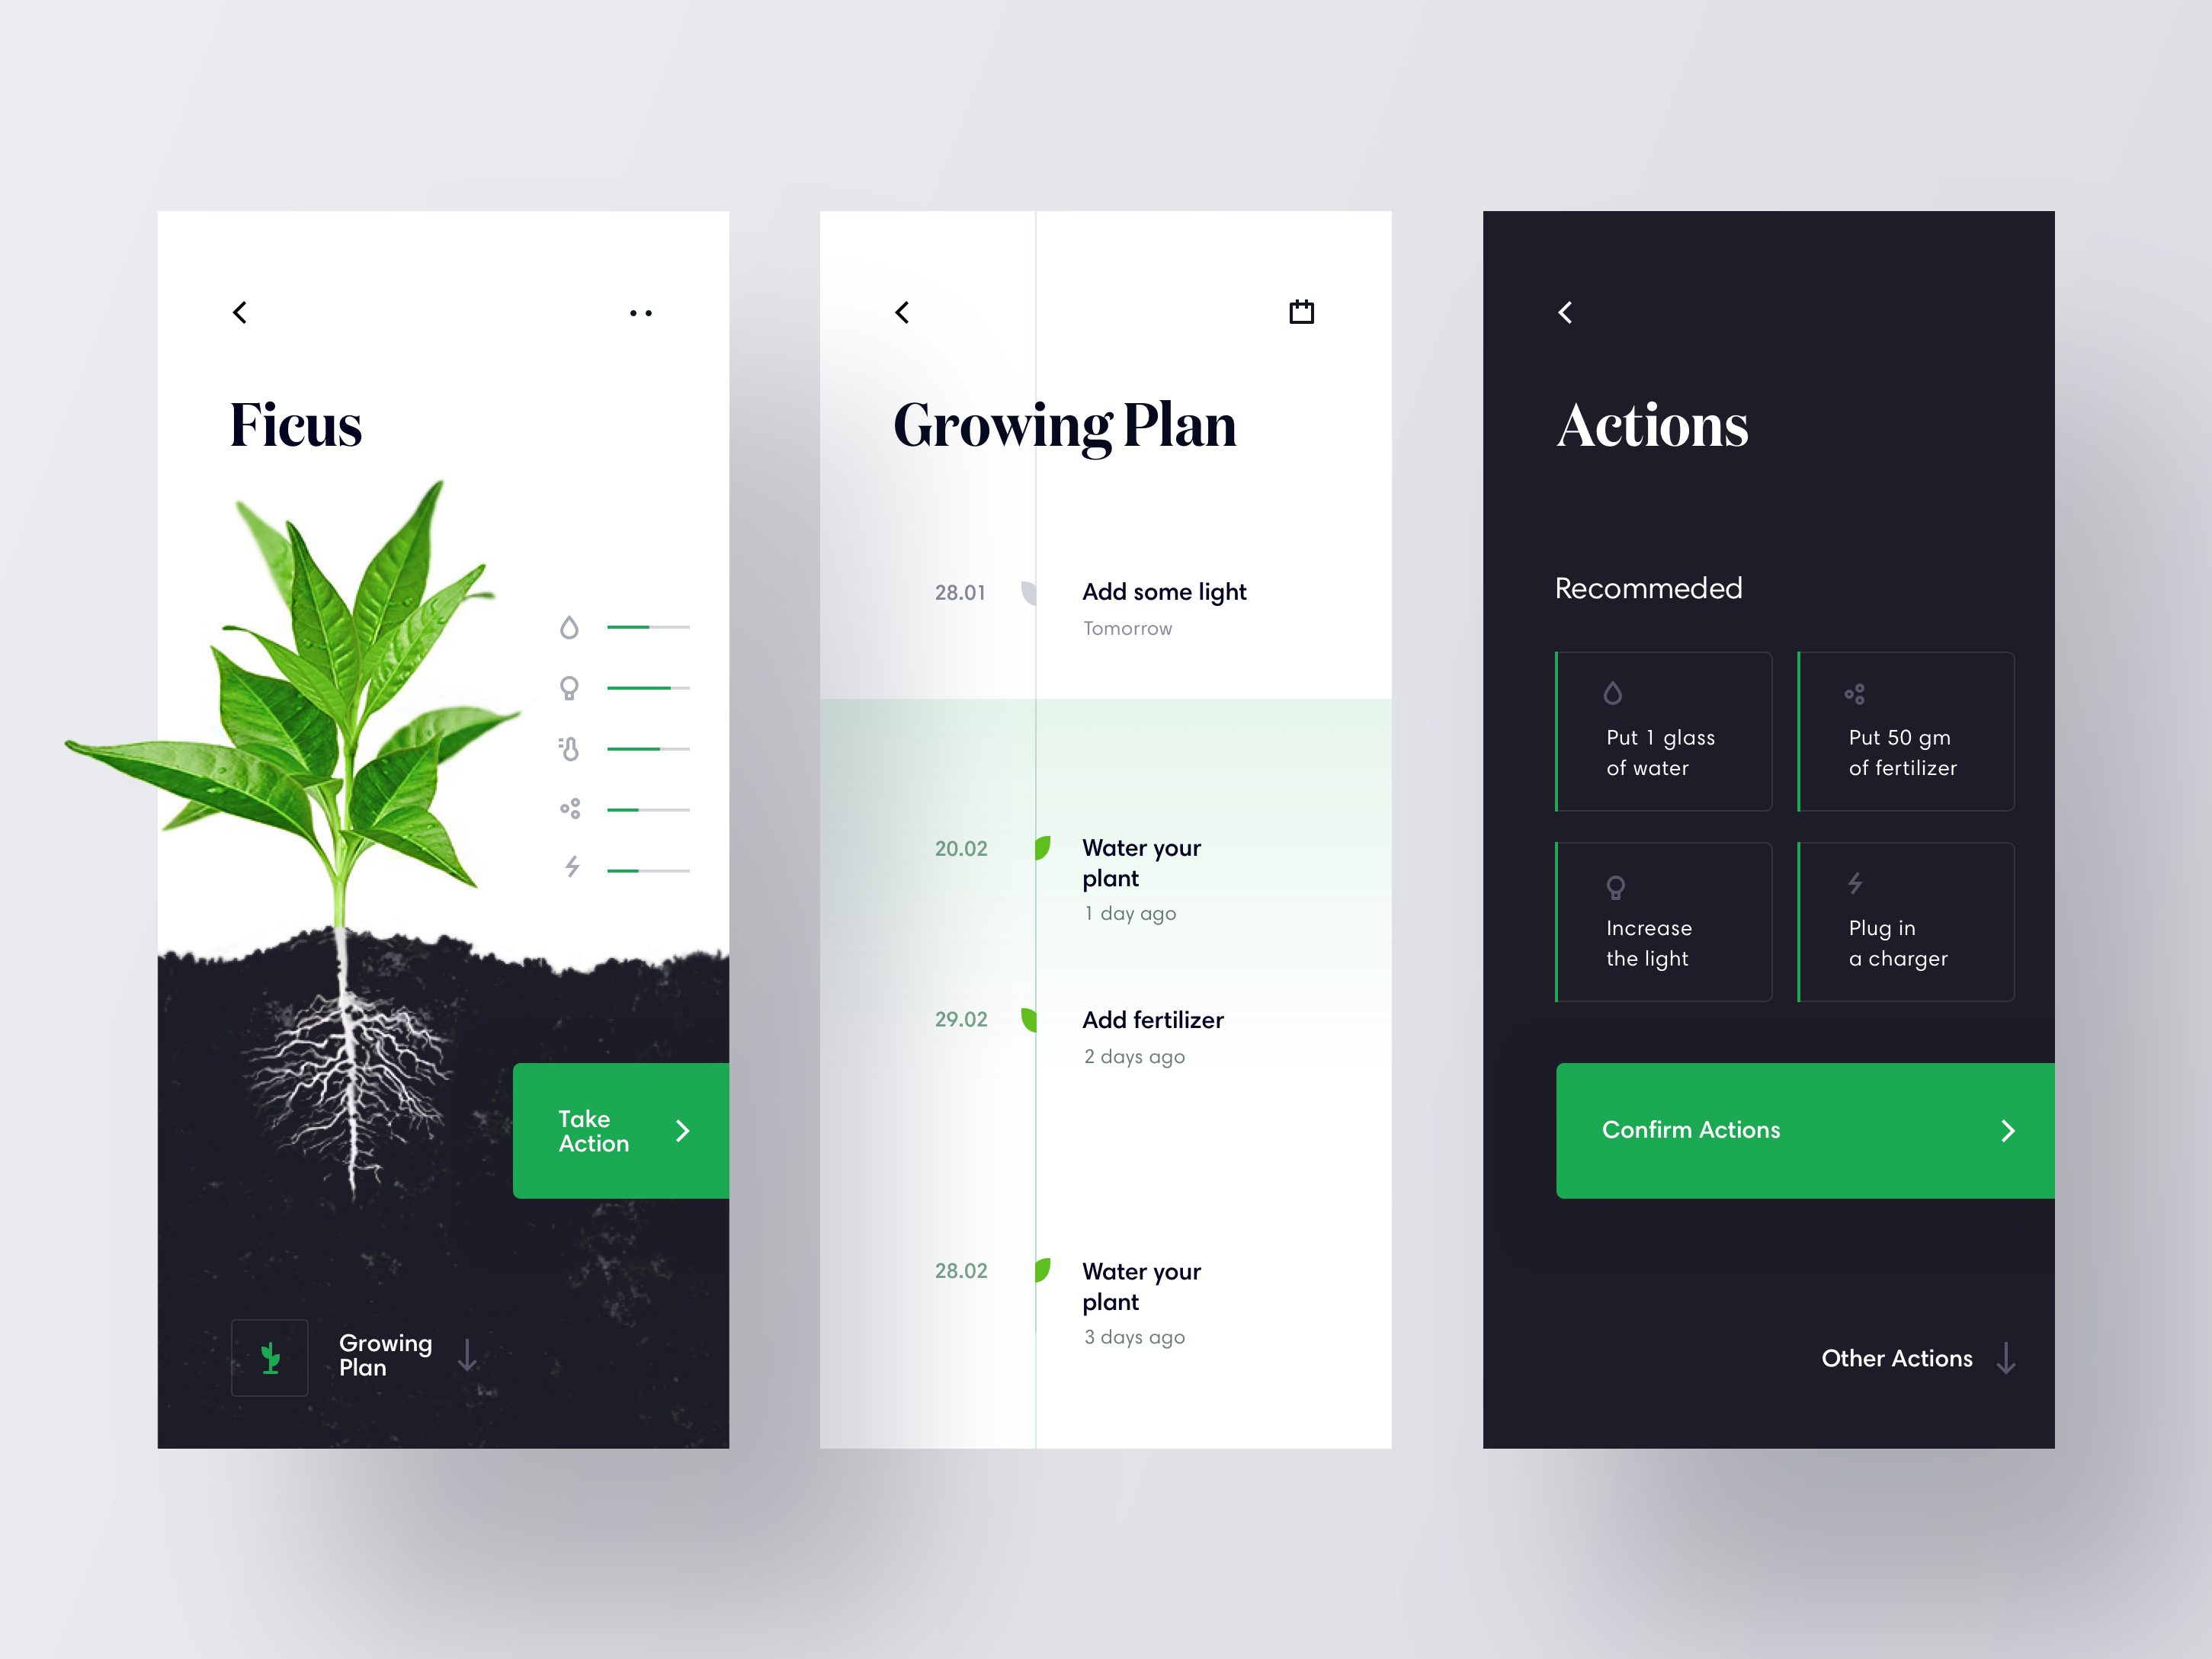 UI Design Inspiration 18 - UI UX - Inspirations - Graphicroozane #interfacedesign